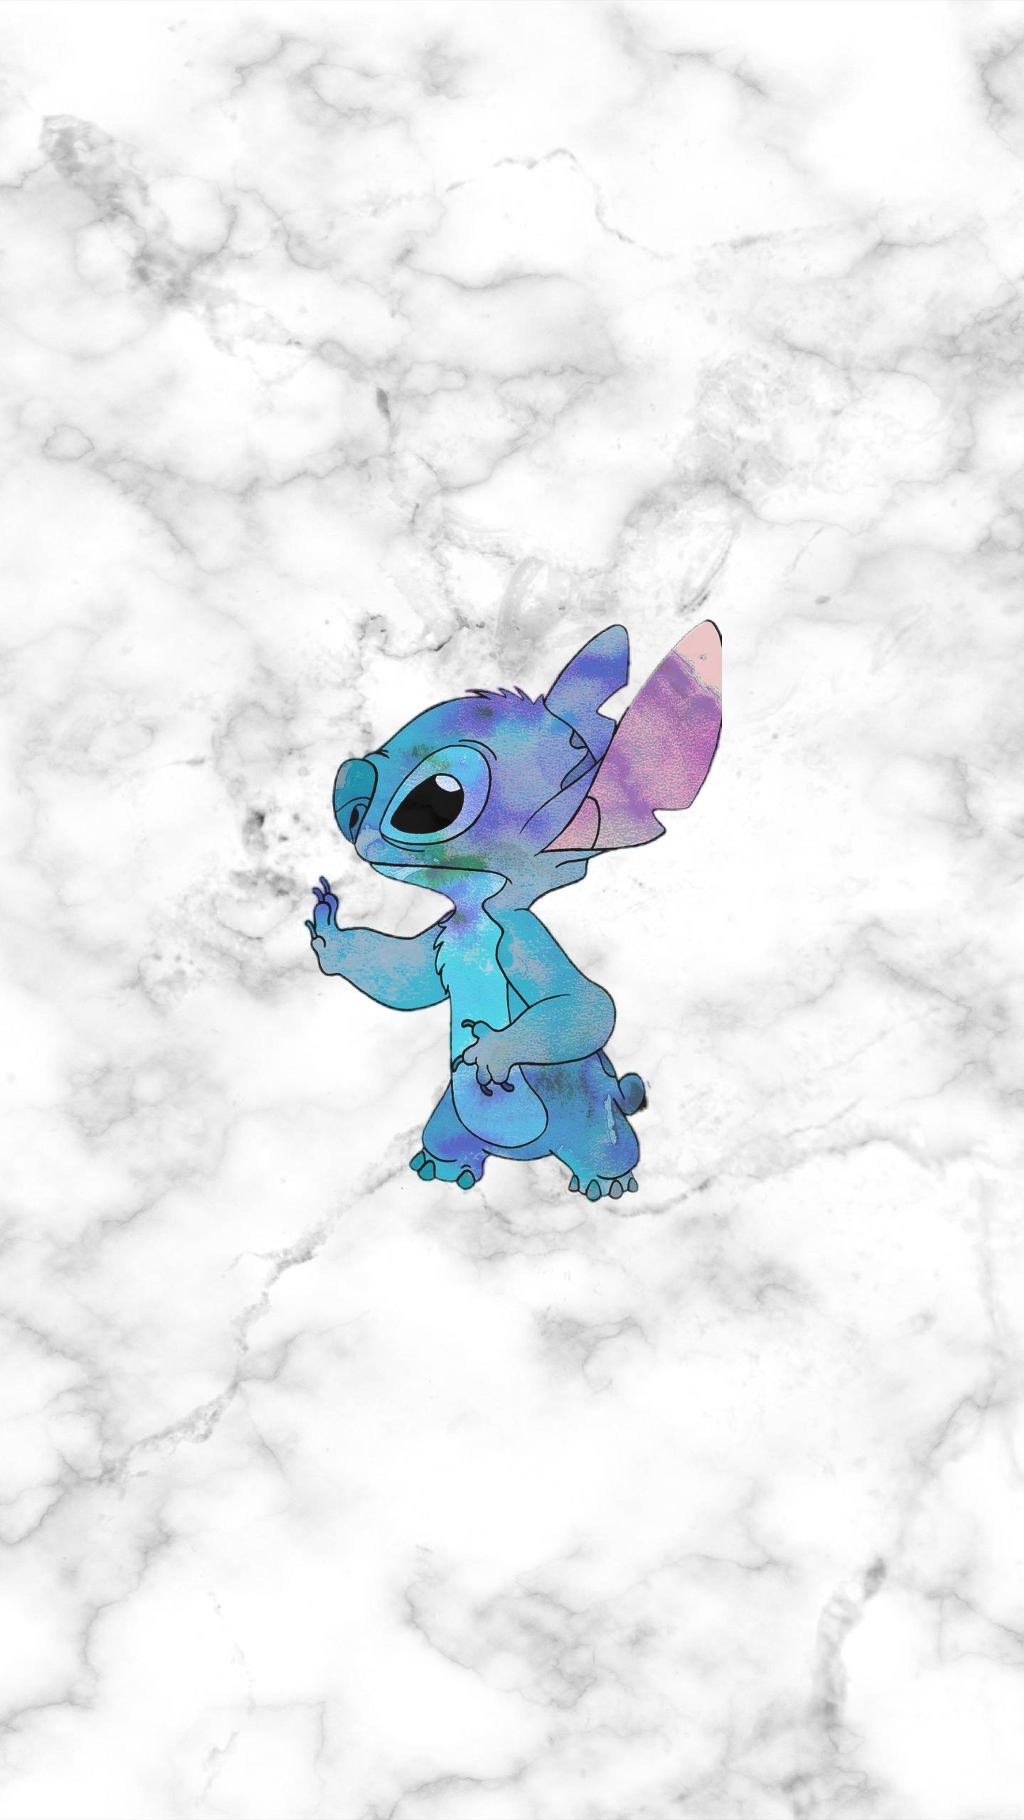 Wallpaper Stitch Posted By Zoey Tremblay